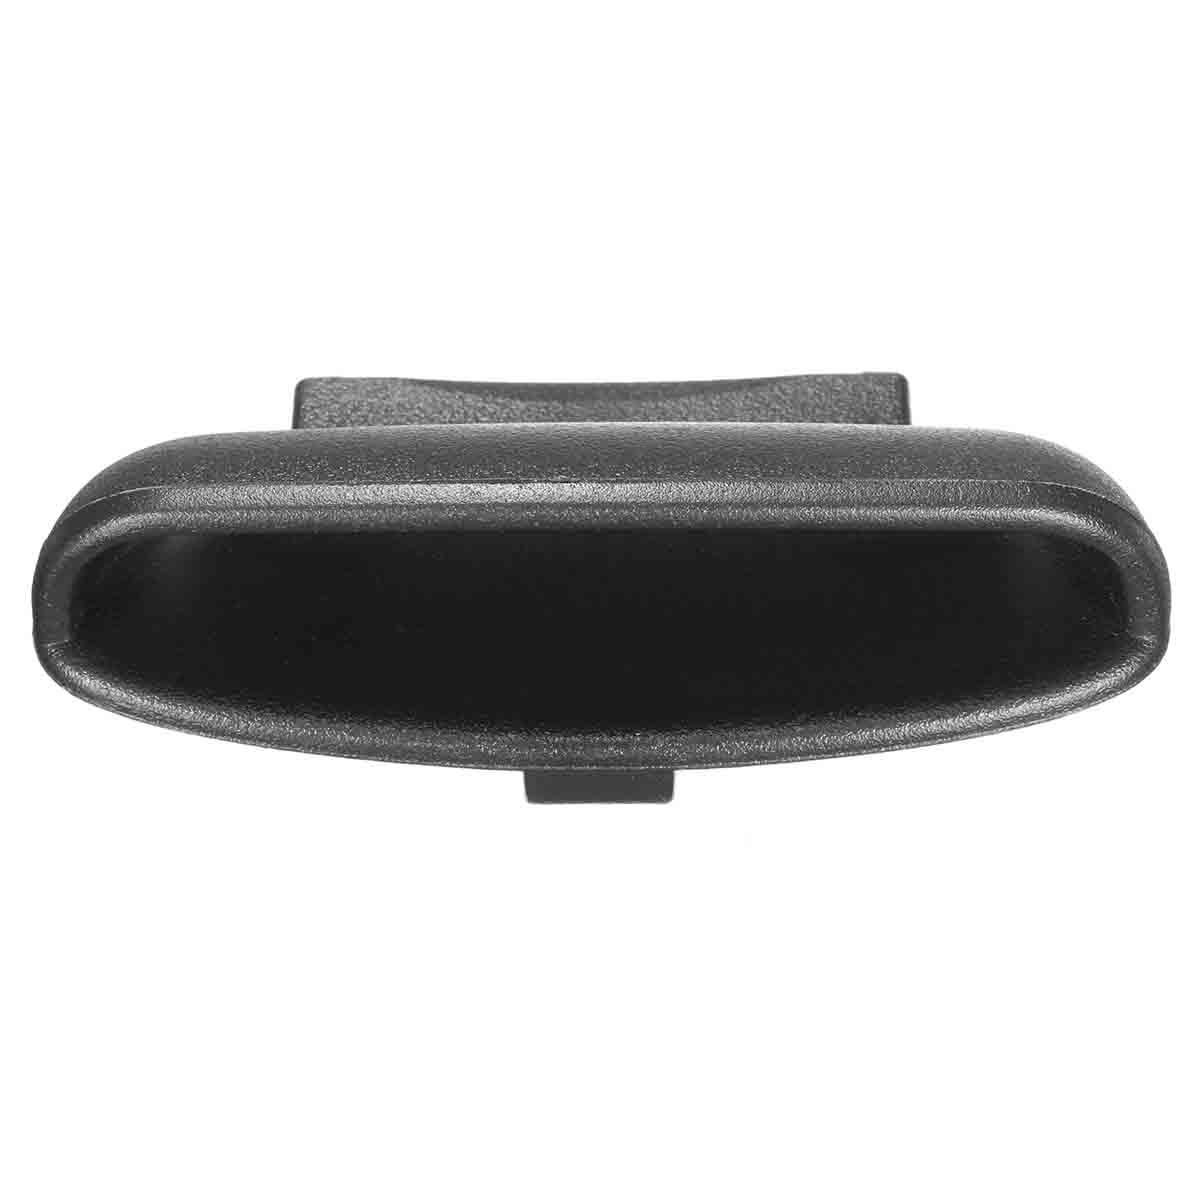 Arm Rest Cover Lock Center Console Latch Clip Fit Civic 1998-2013 83451SNA-A01ZA - Auto Parts Other Tools - 1 X Armrest Cover Lock